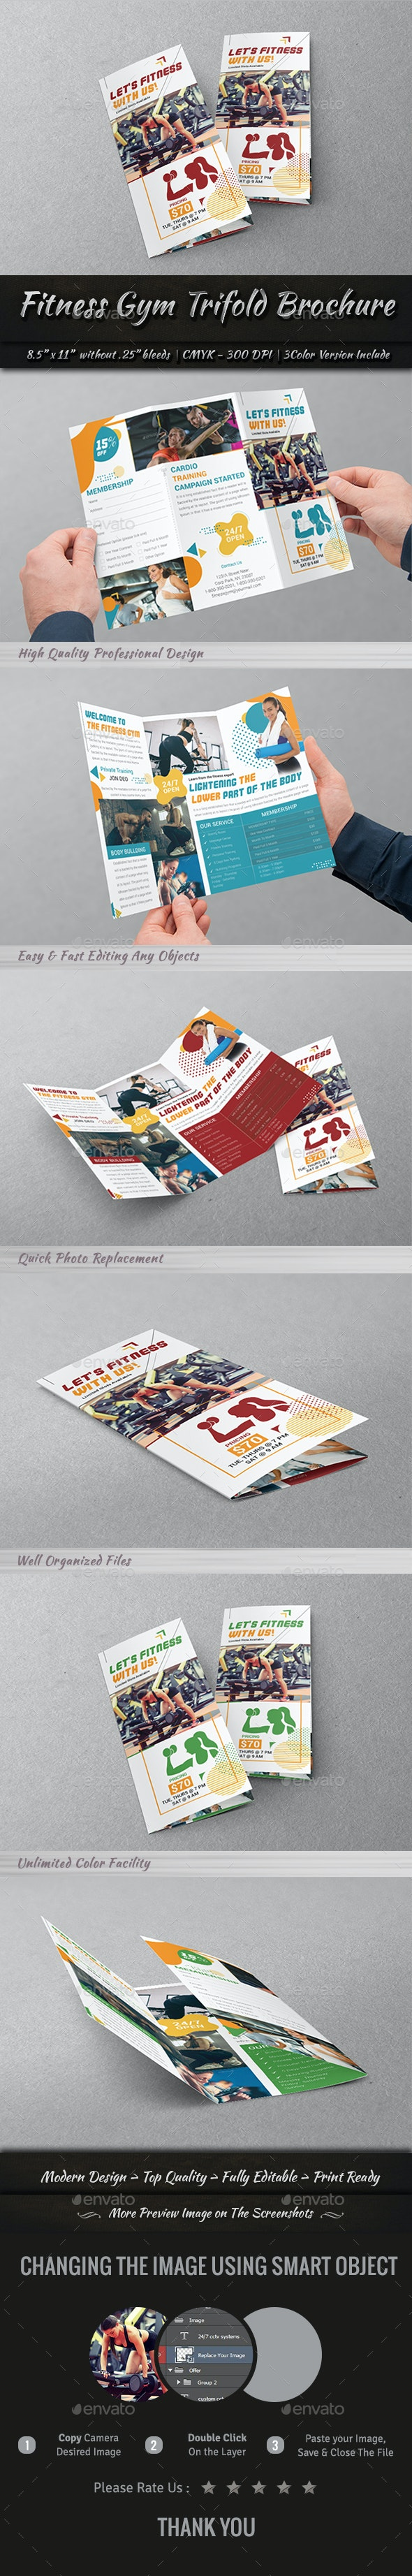 Fitness Gym Trifold Brochure - Brochures Print Templates